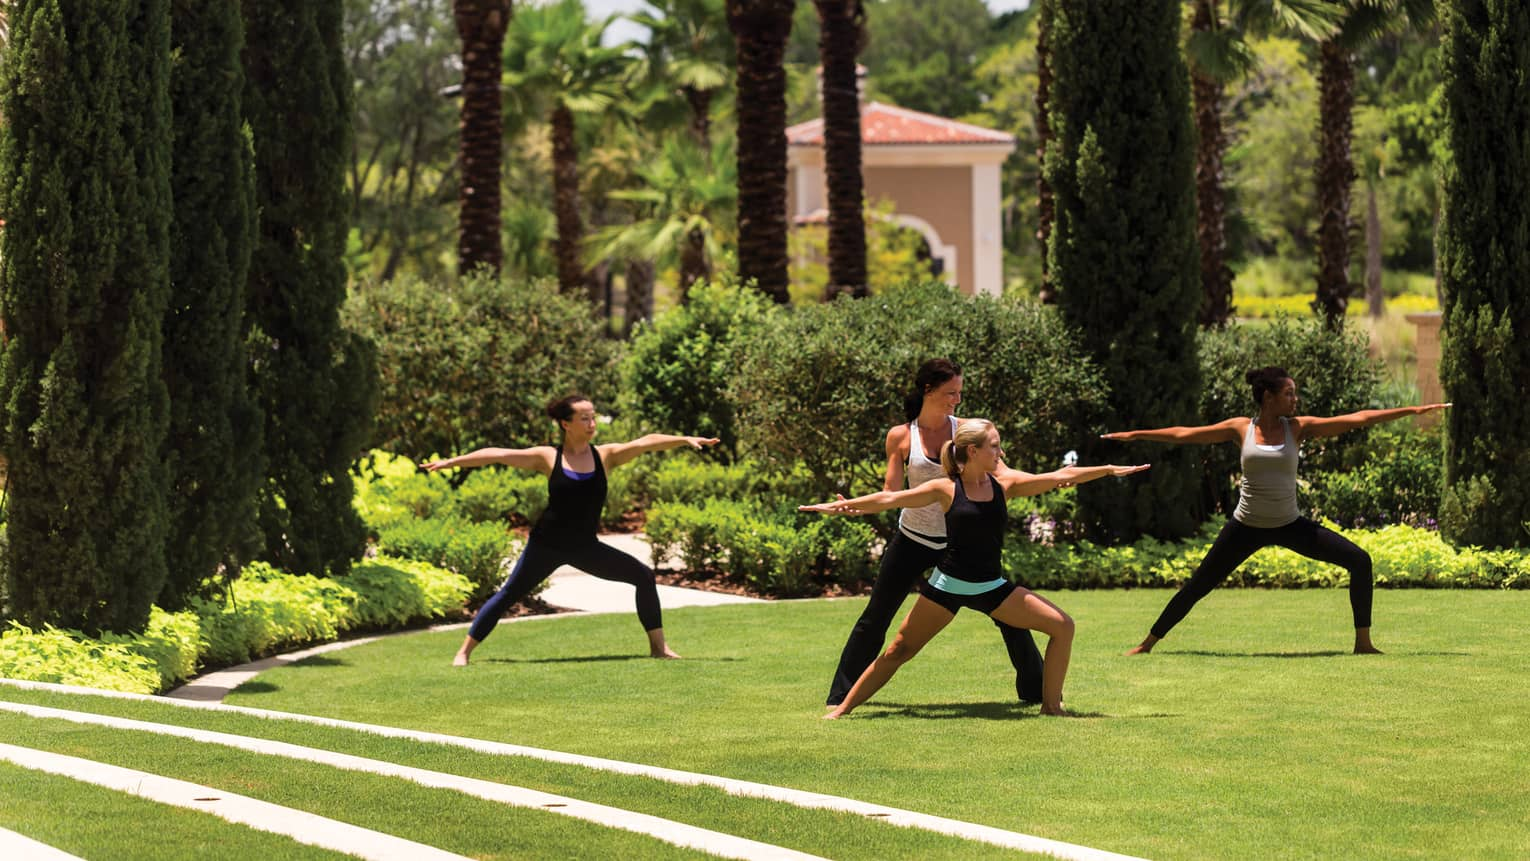 Group of people stand, arms outstretched in yoga poses on green lawn